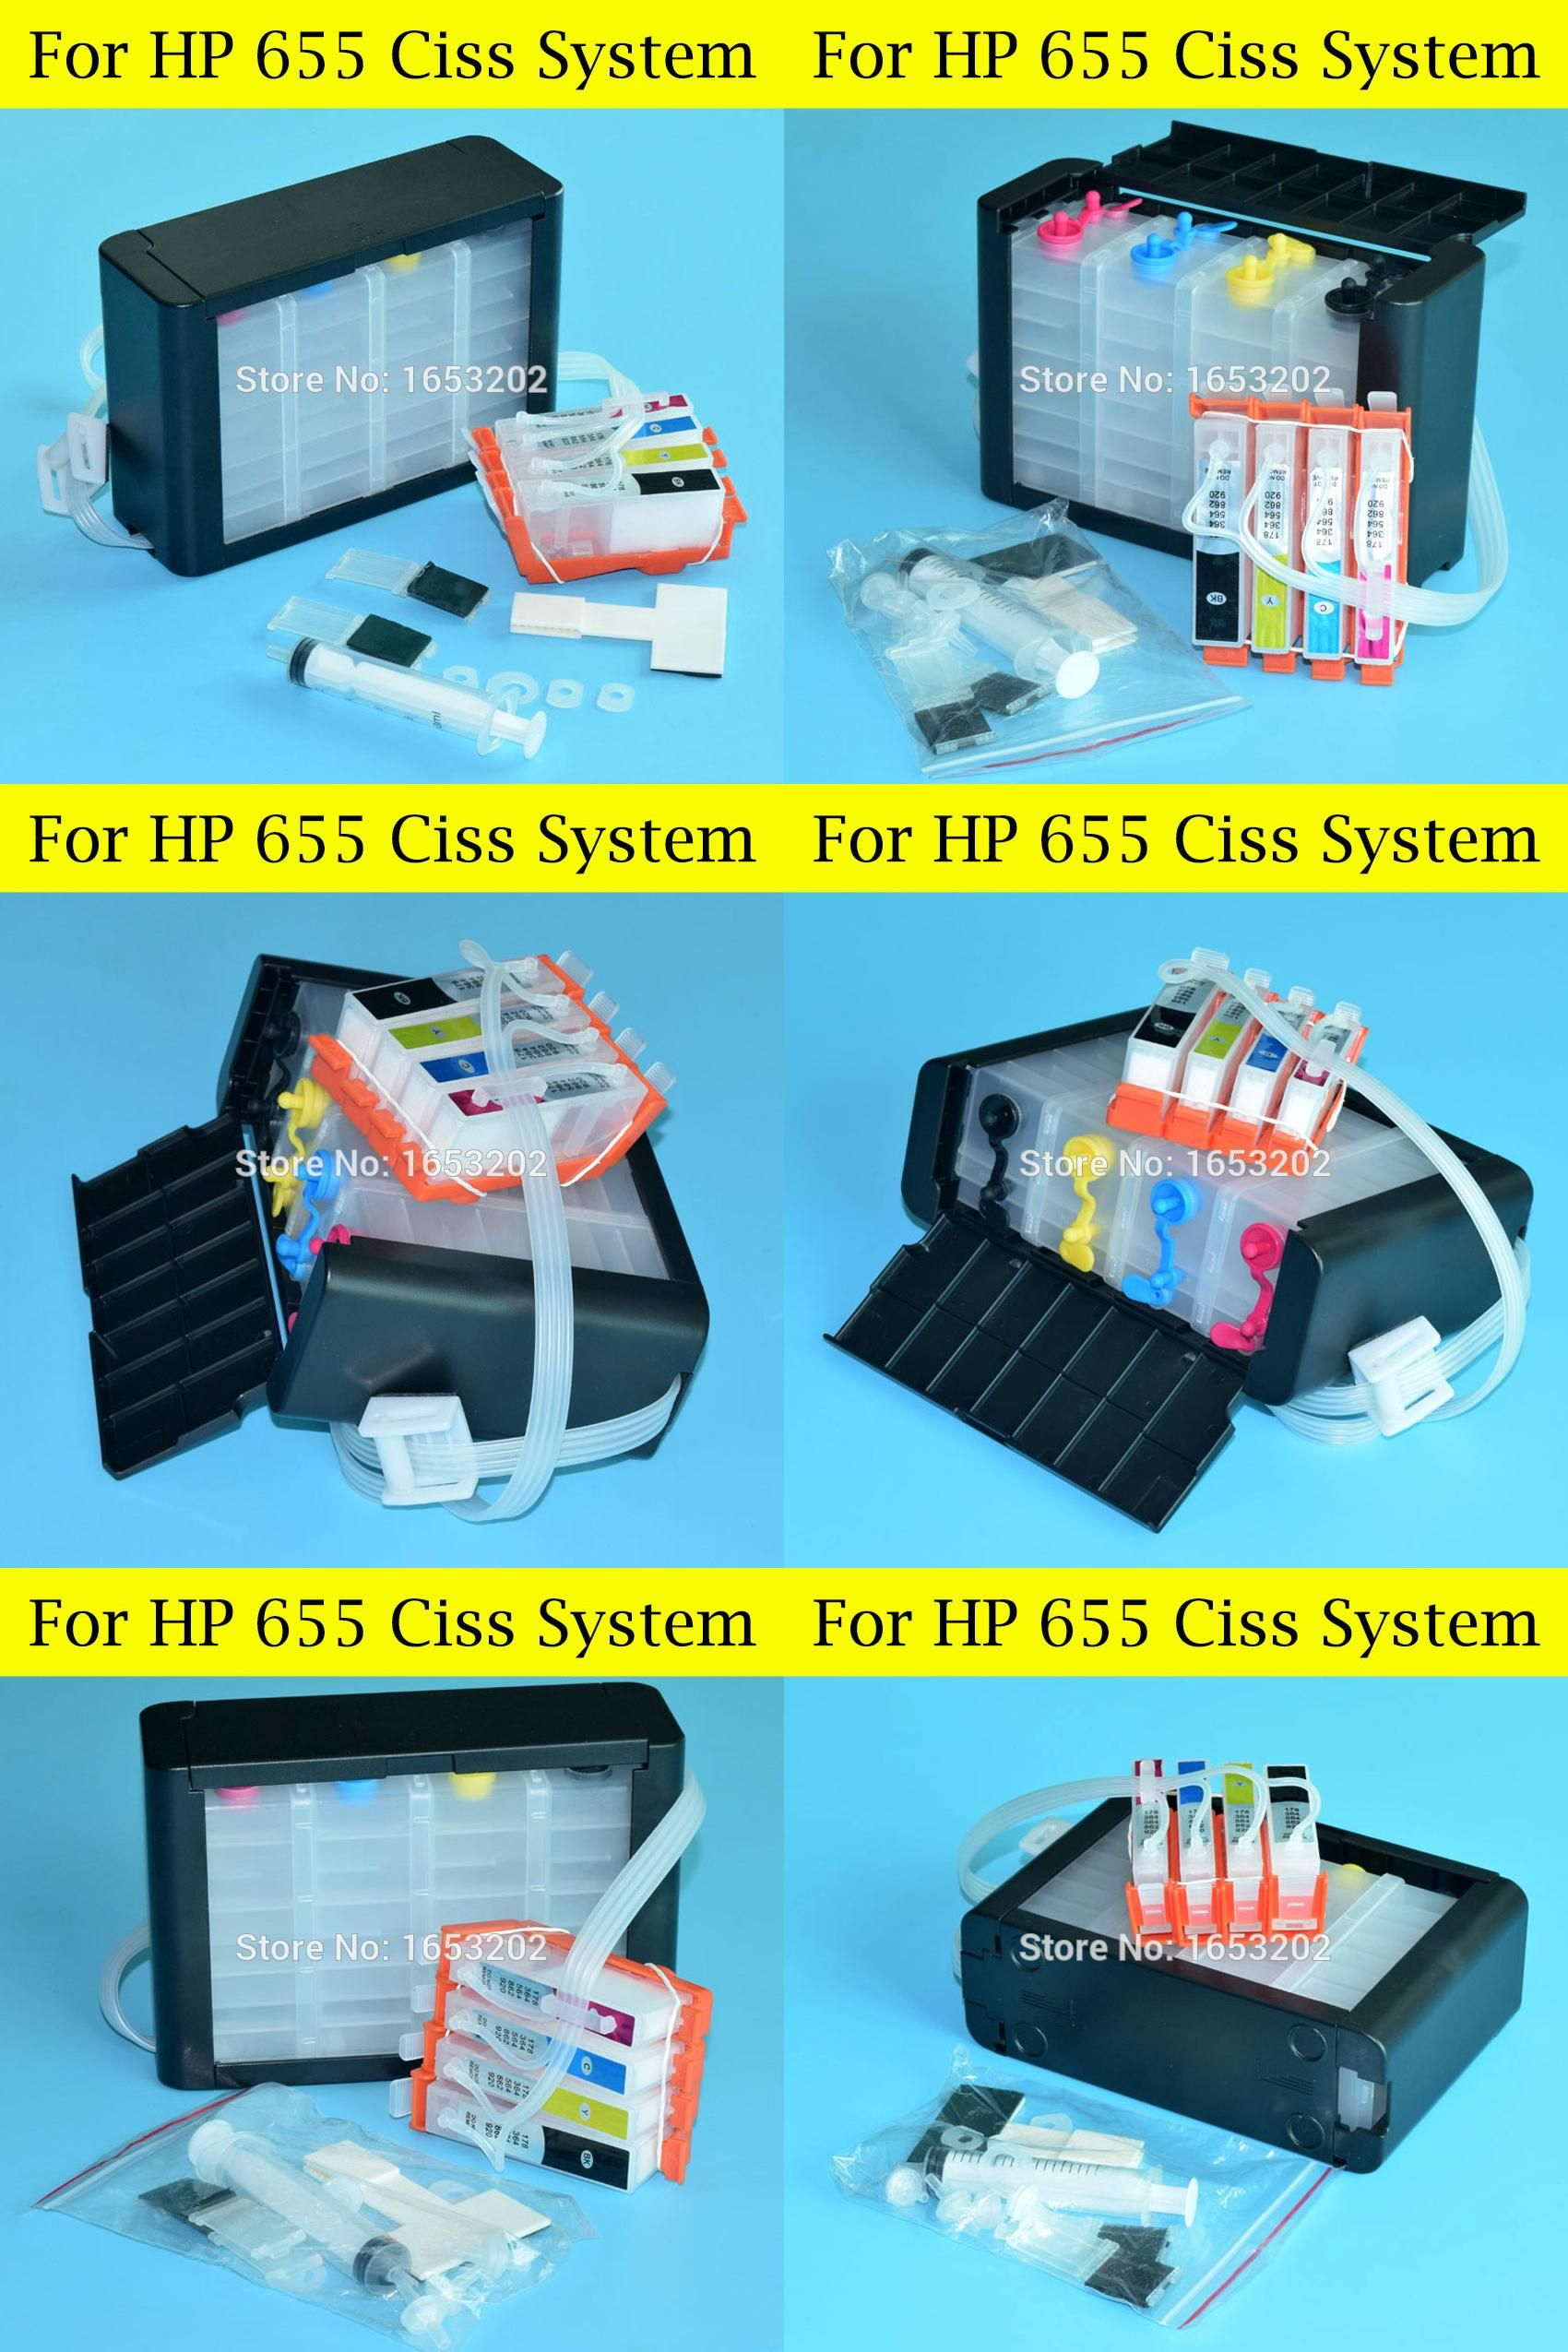 office decorations ideas 4625. office decorations ideas 4625 to buy 4 colorset empty continuous ink supply system or ciss a